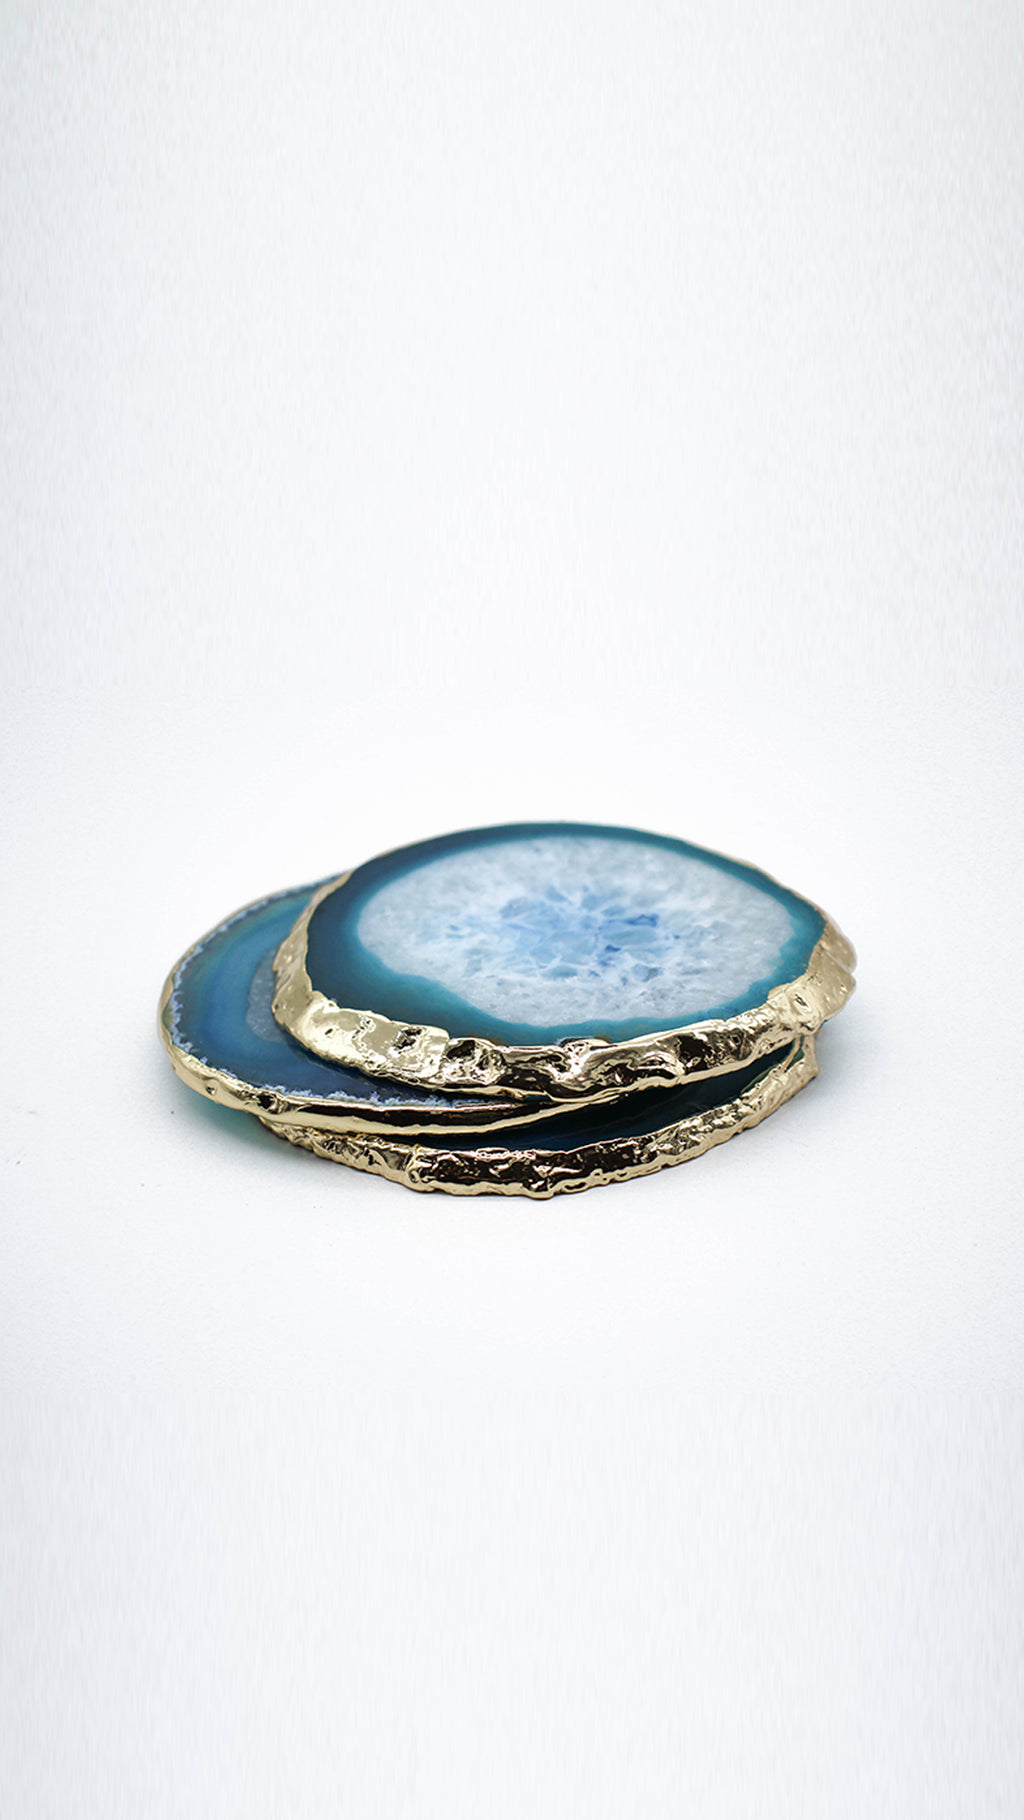 Santorini Blue - Agate Jewelry Coaster (Single Coaster)